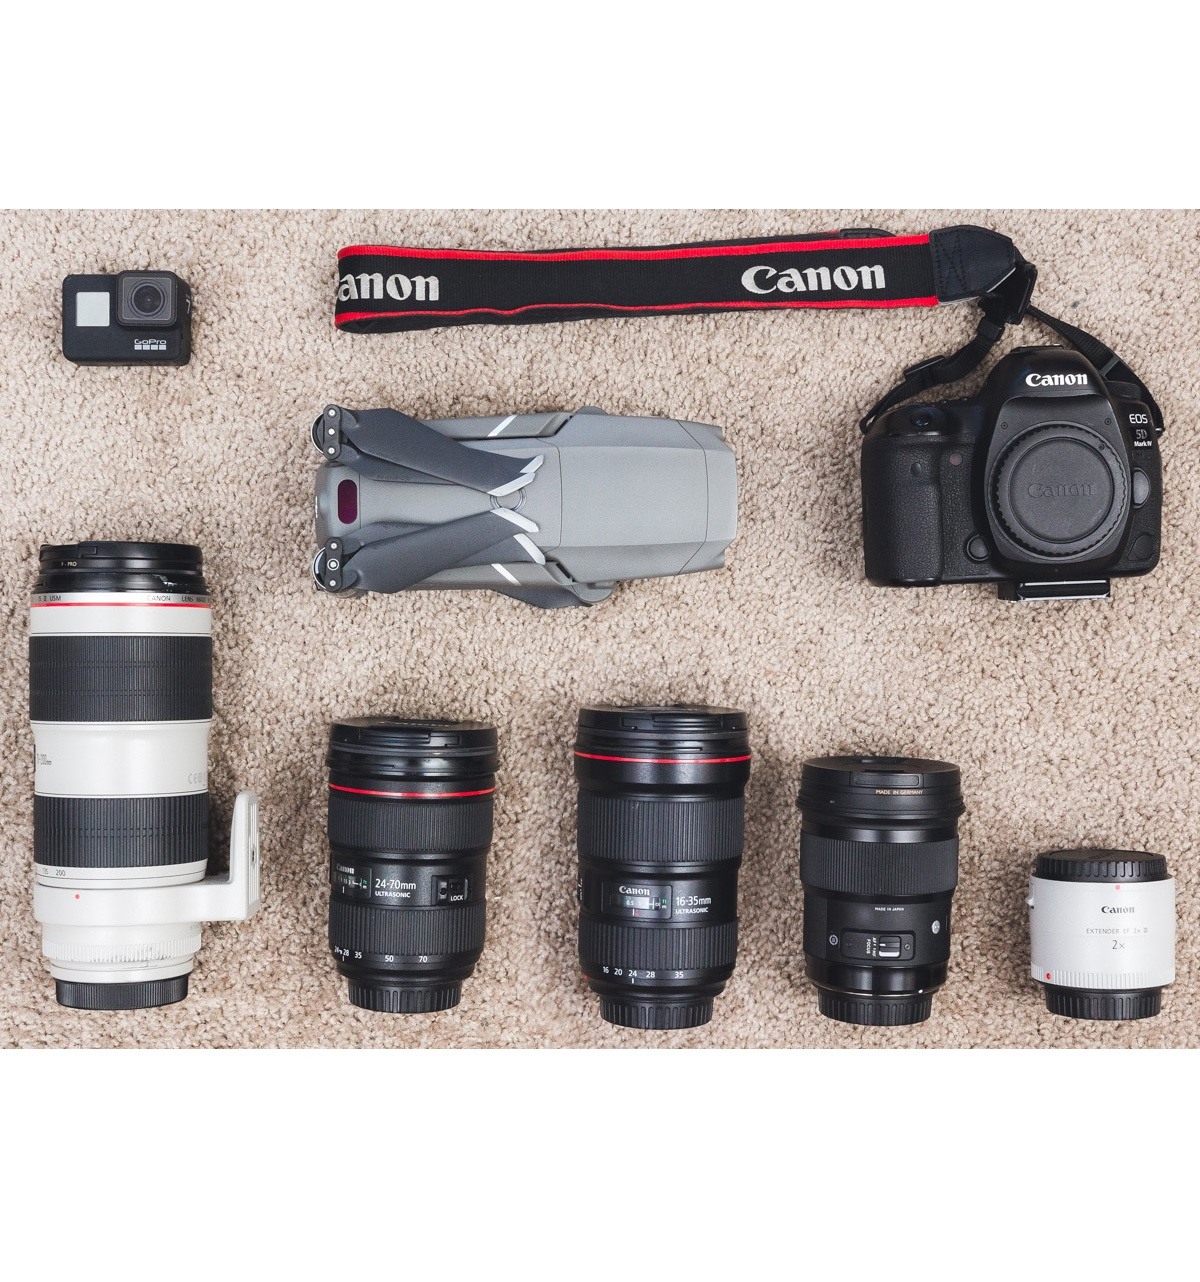 Camera Gear - Canon 5D Mark IVCanon EF 16-35mm f/2.8L IIICanon EF 24-70mm f/2.8L IICanon EF 70-200mm f/2.8L IIICanon EF 2.0X III Telephoto ExtenderSigma 50mm f/1.4 ArtDJI Mavic 2 ProGoPro HERO 7 Black